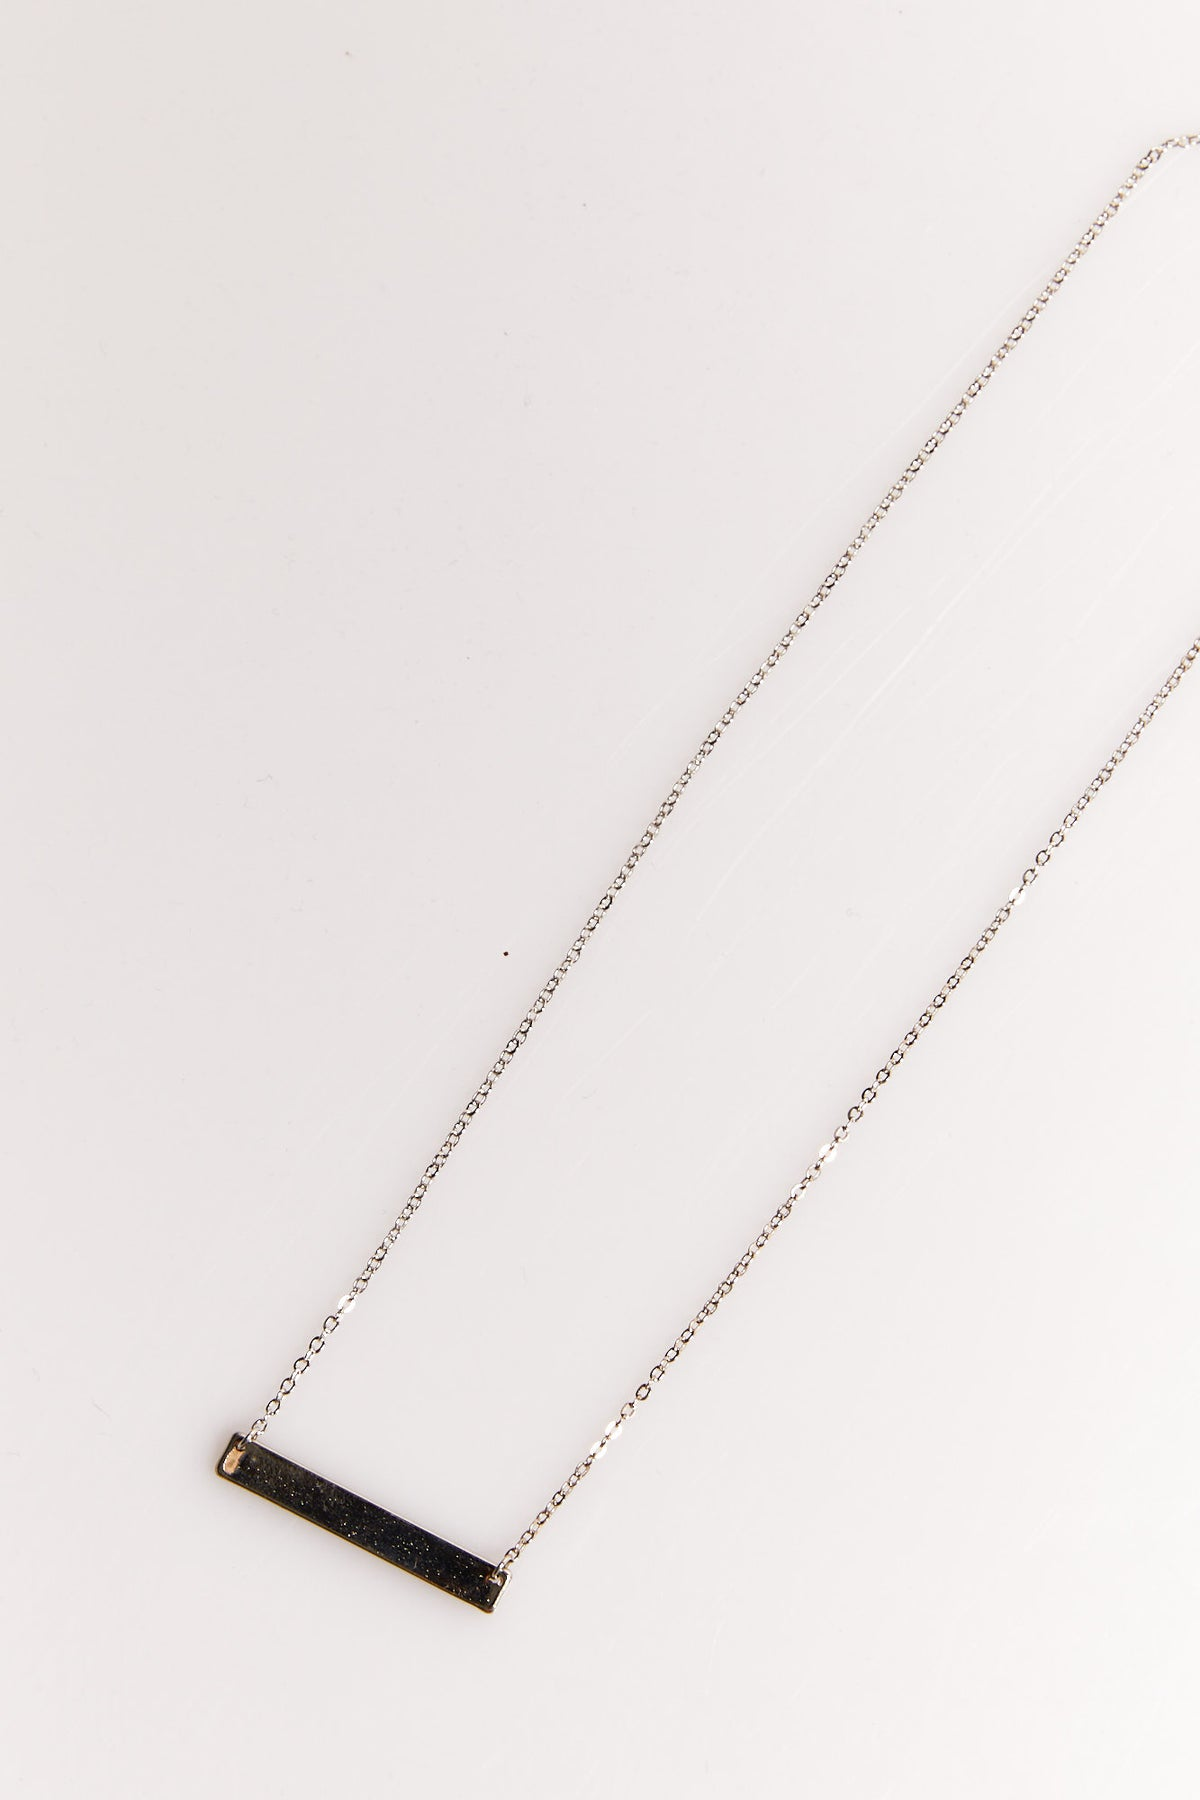 NTH Nameplate Necklace Silver